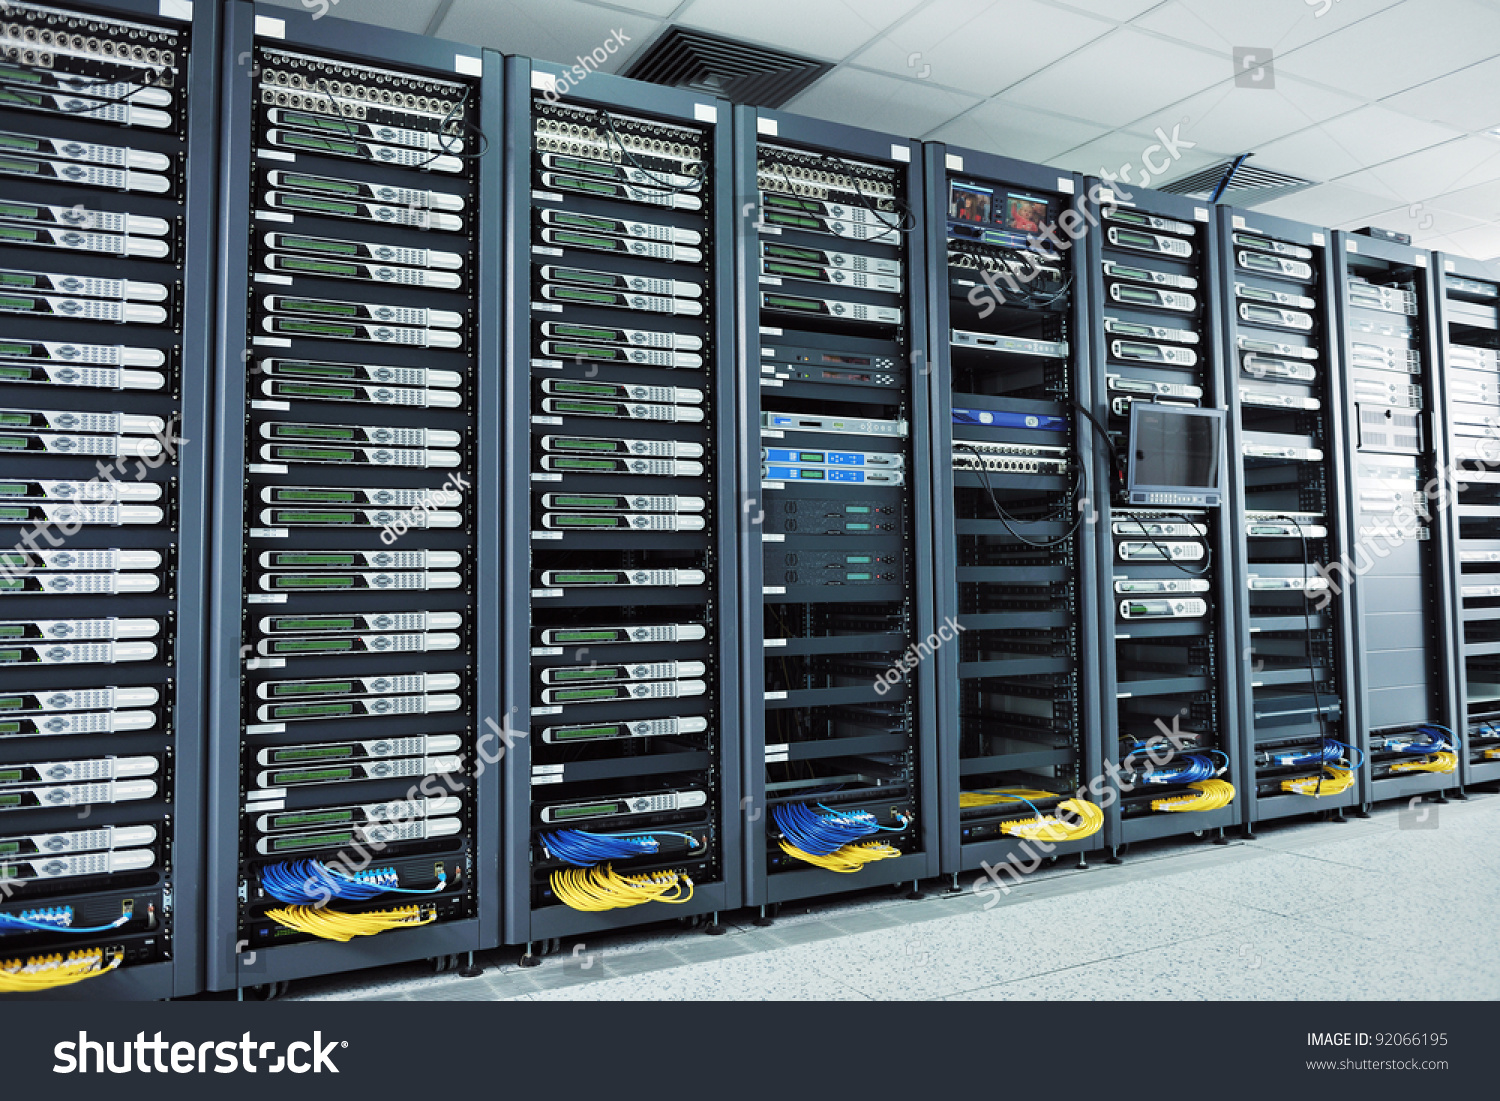 network server room with computers for digital tv ip communications and internet stock photo. Black Bedroom Furniture Sets. Home Design Ideas